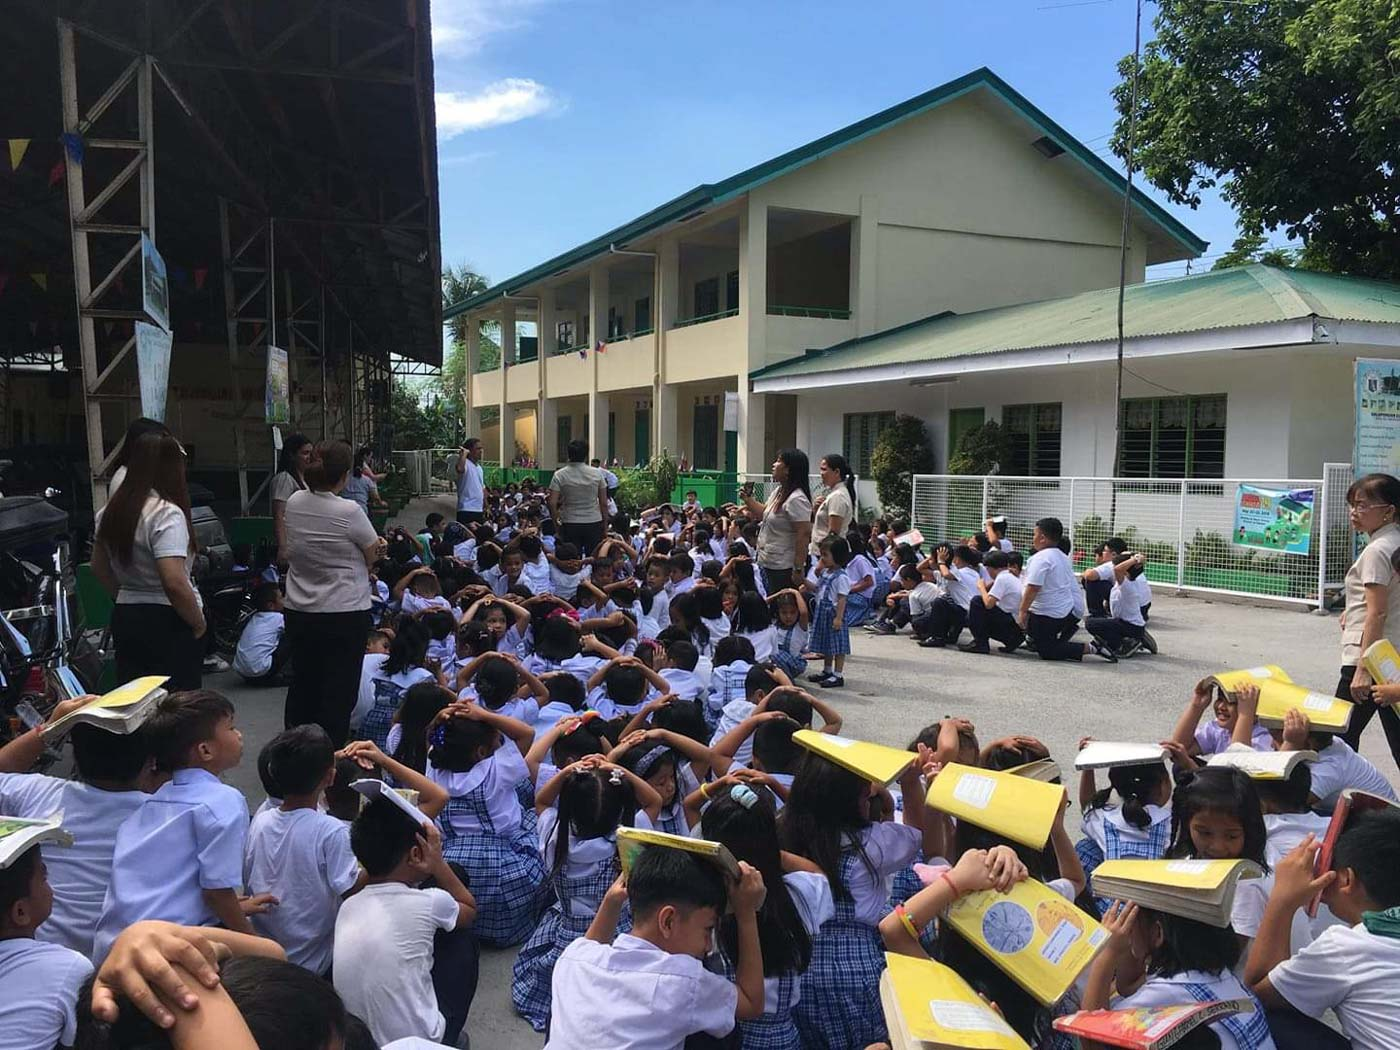 PARTICIPATE. Salapungan Elementary School students in Angeles City, Pampanga. Photo by Helen Juguilon